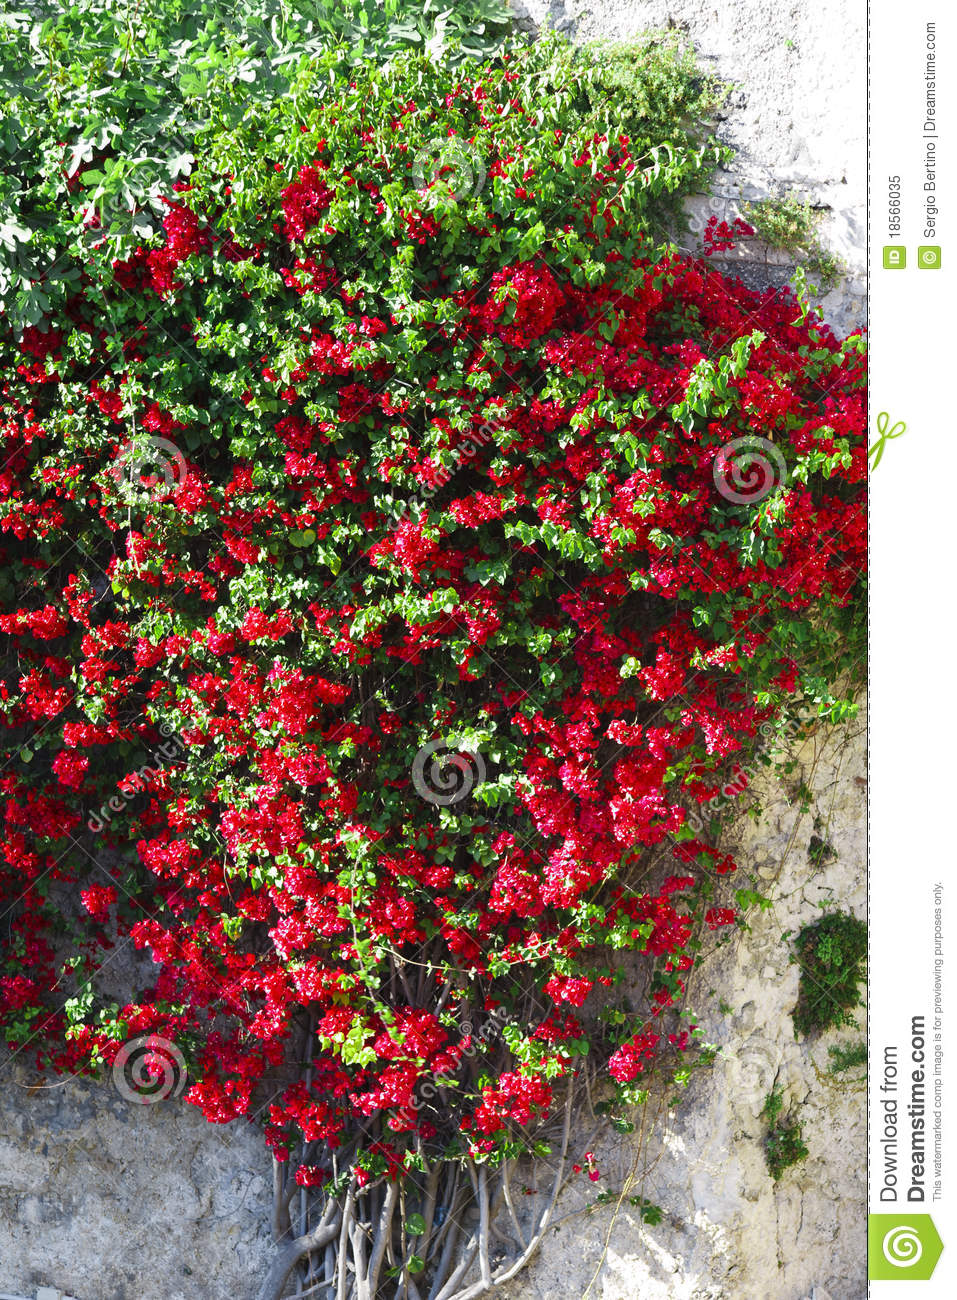 More similar stock images of red flowers on climbing plant